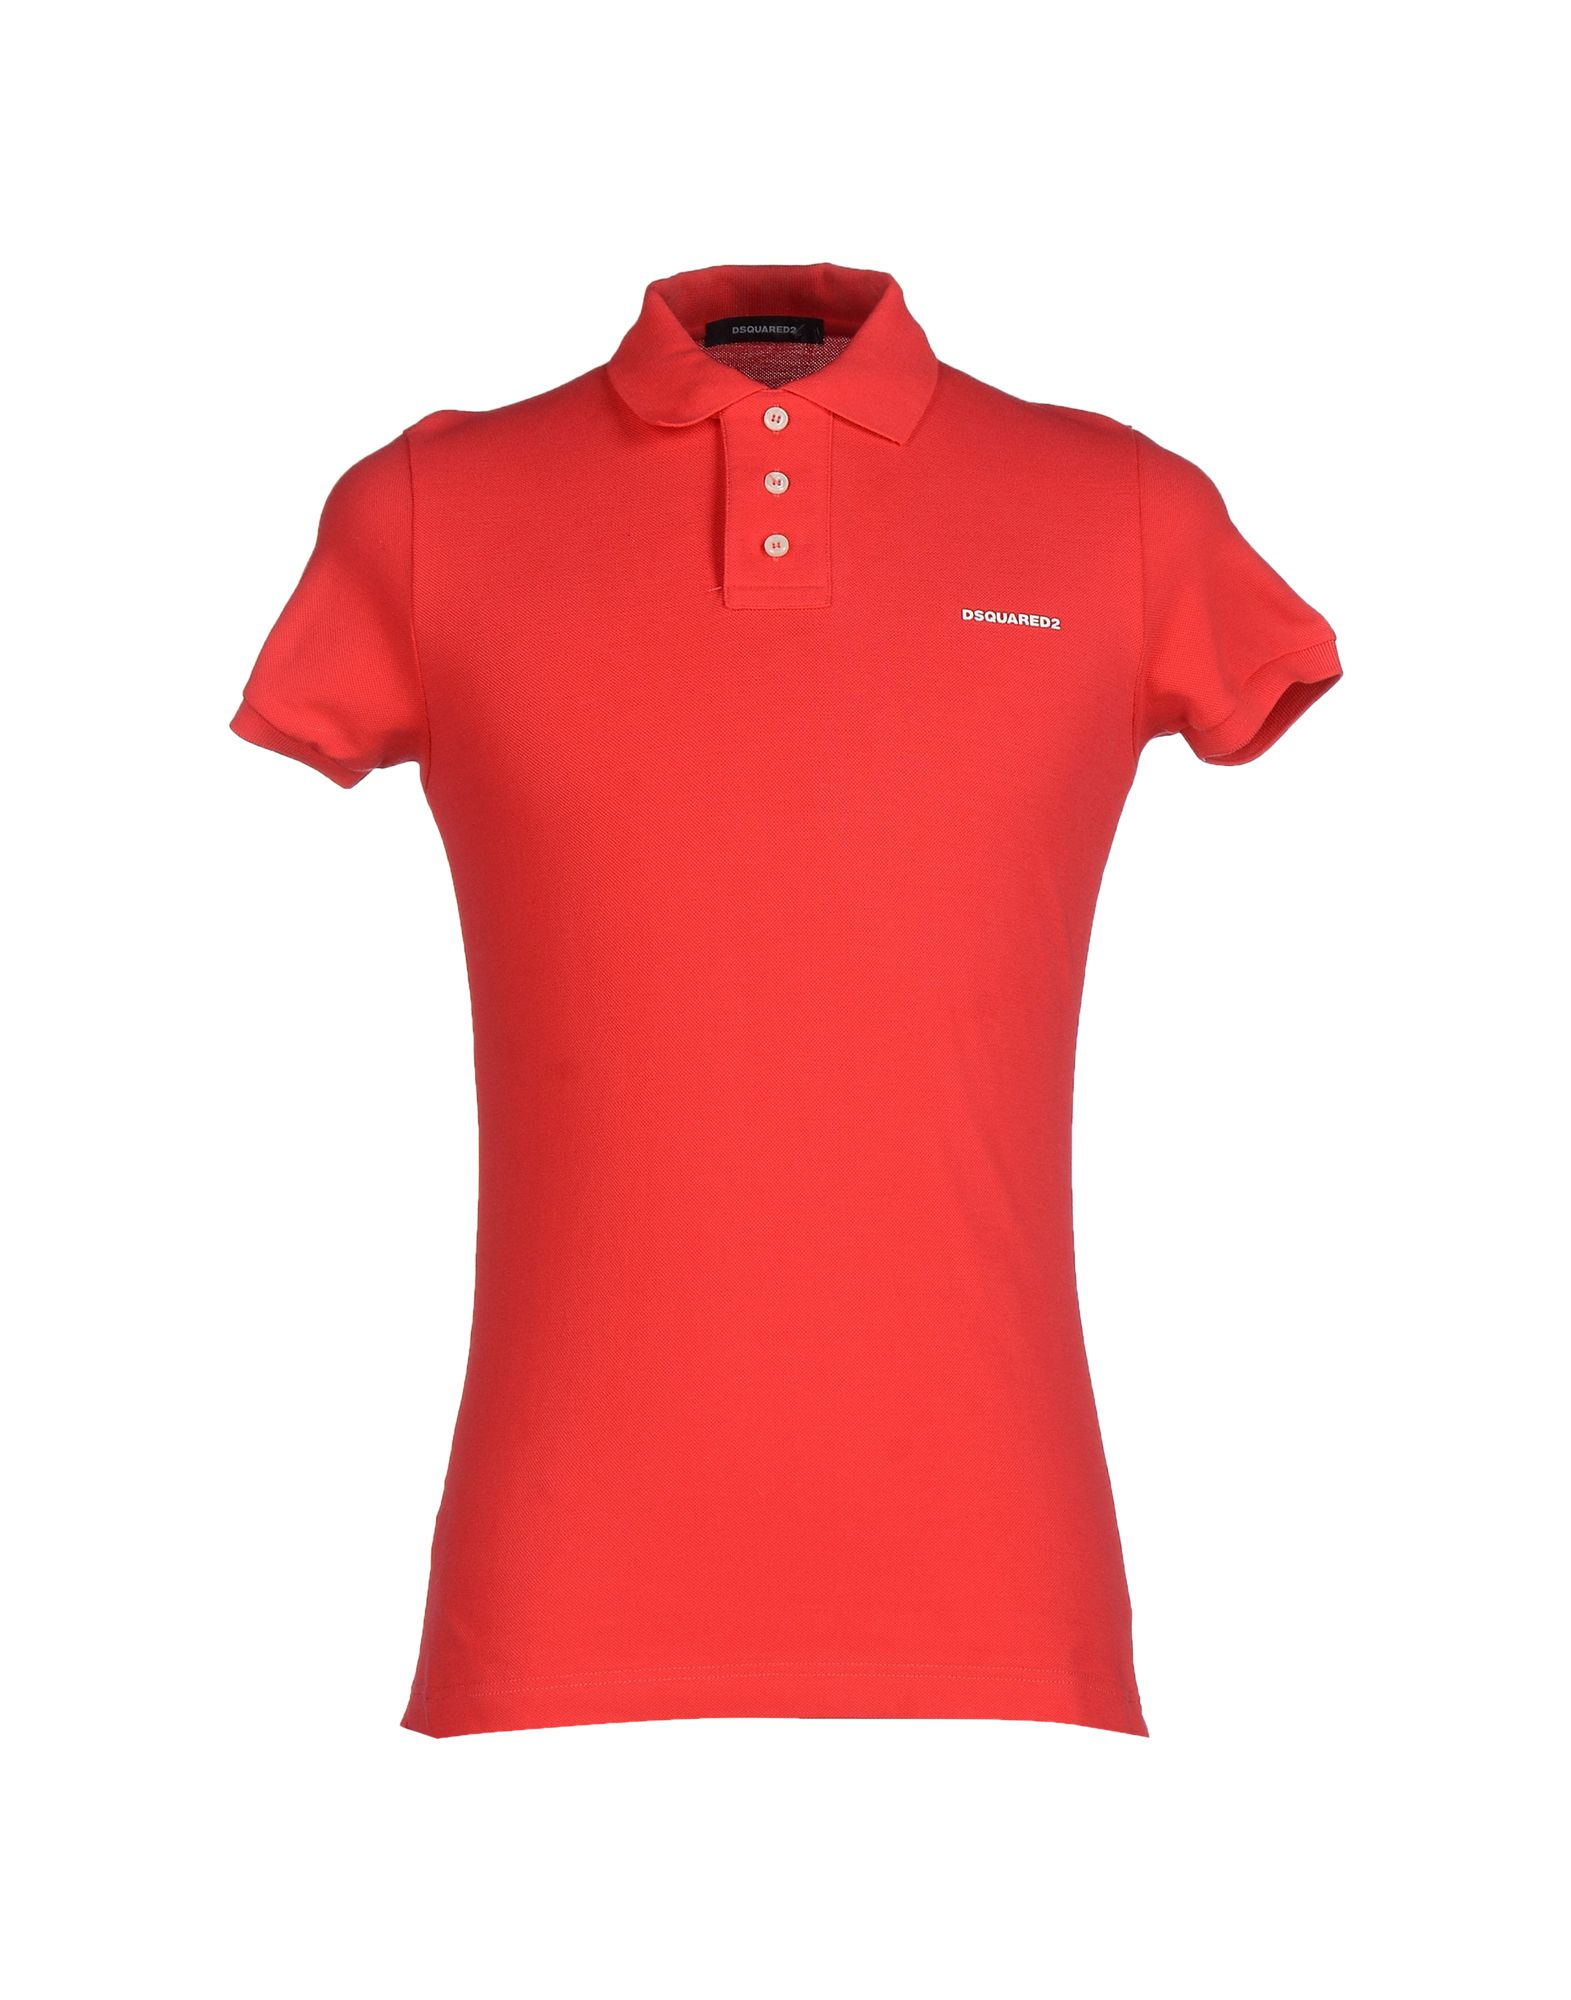 Dsquared Polo Shirt In Red For Men Lyst